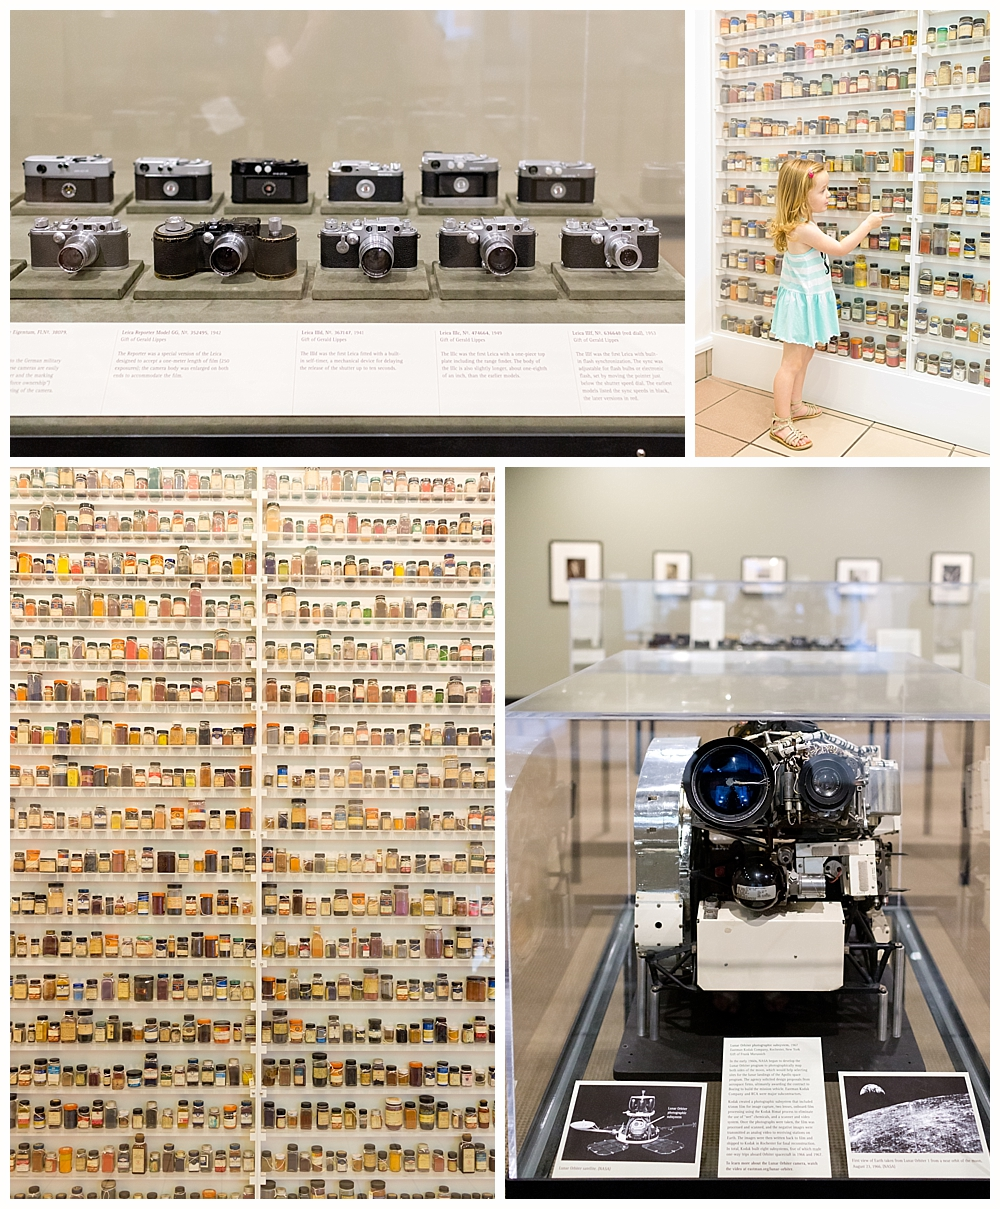 historical camera exhibit at Eastman museum in Rochester, NY